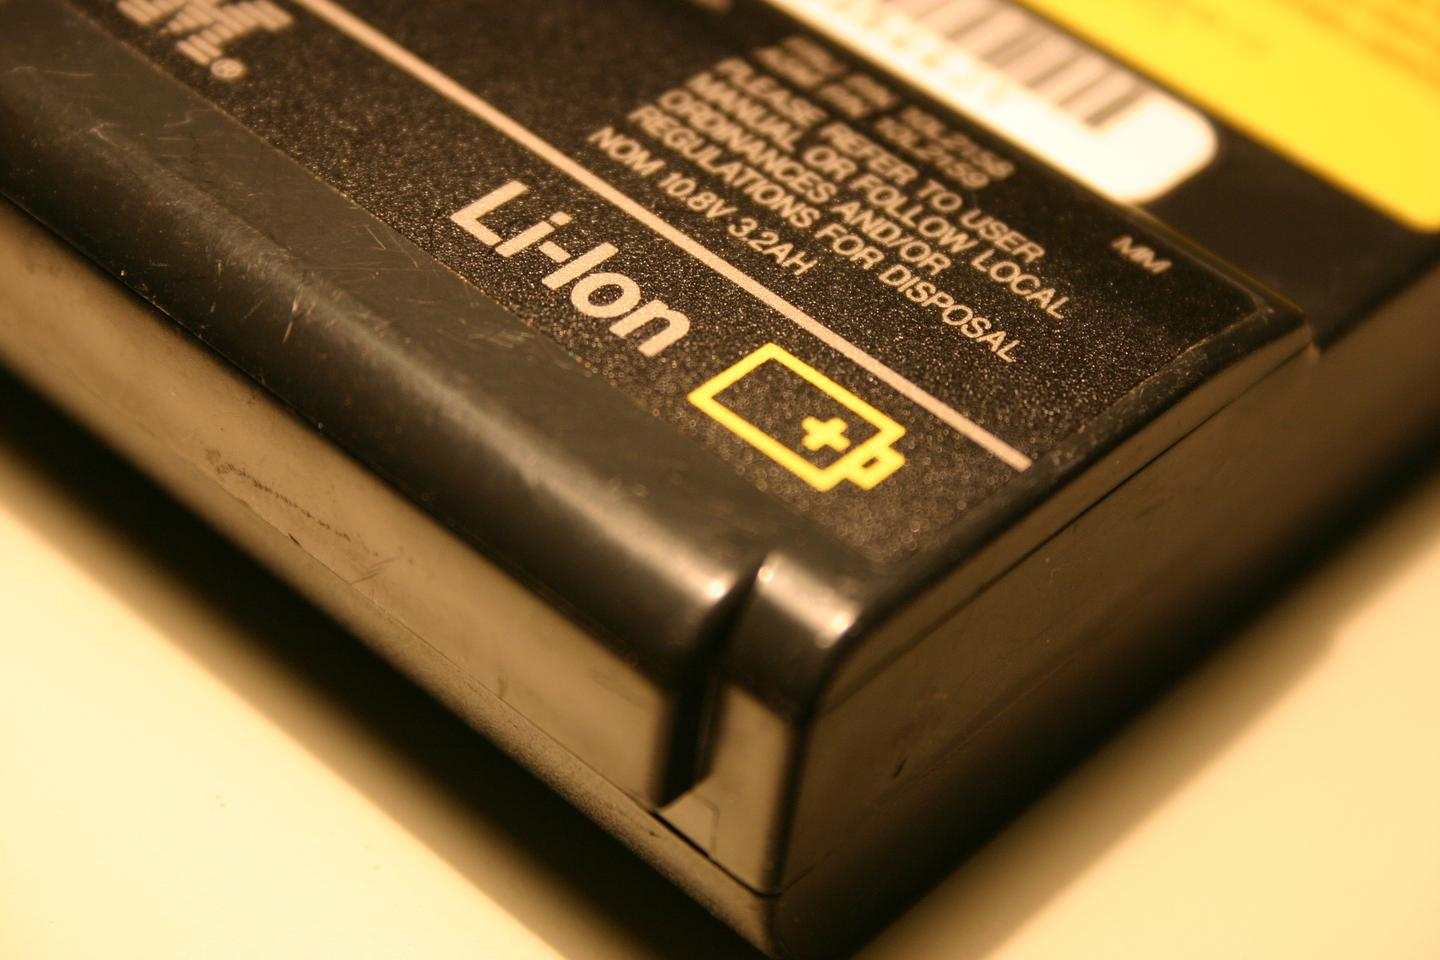 Batteries from old laptops could find new life ... in UrJars (Photo: Shutterstock)